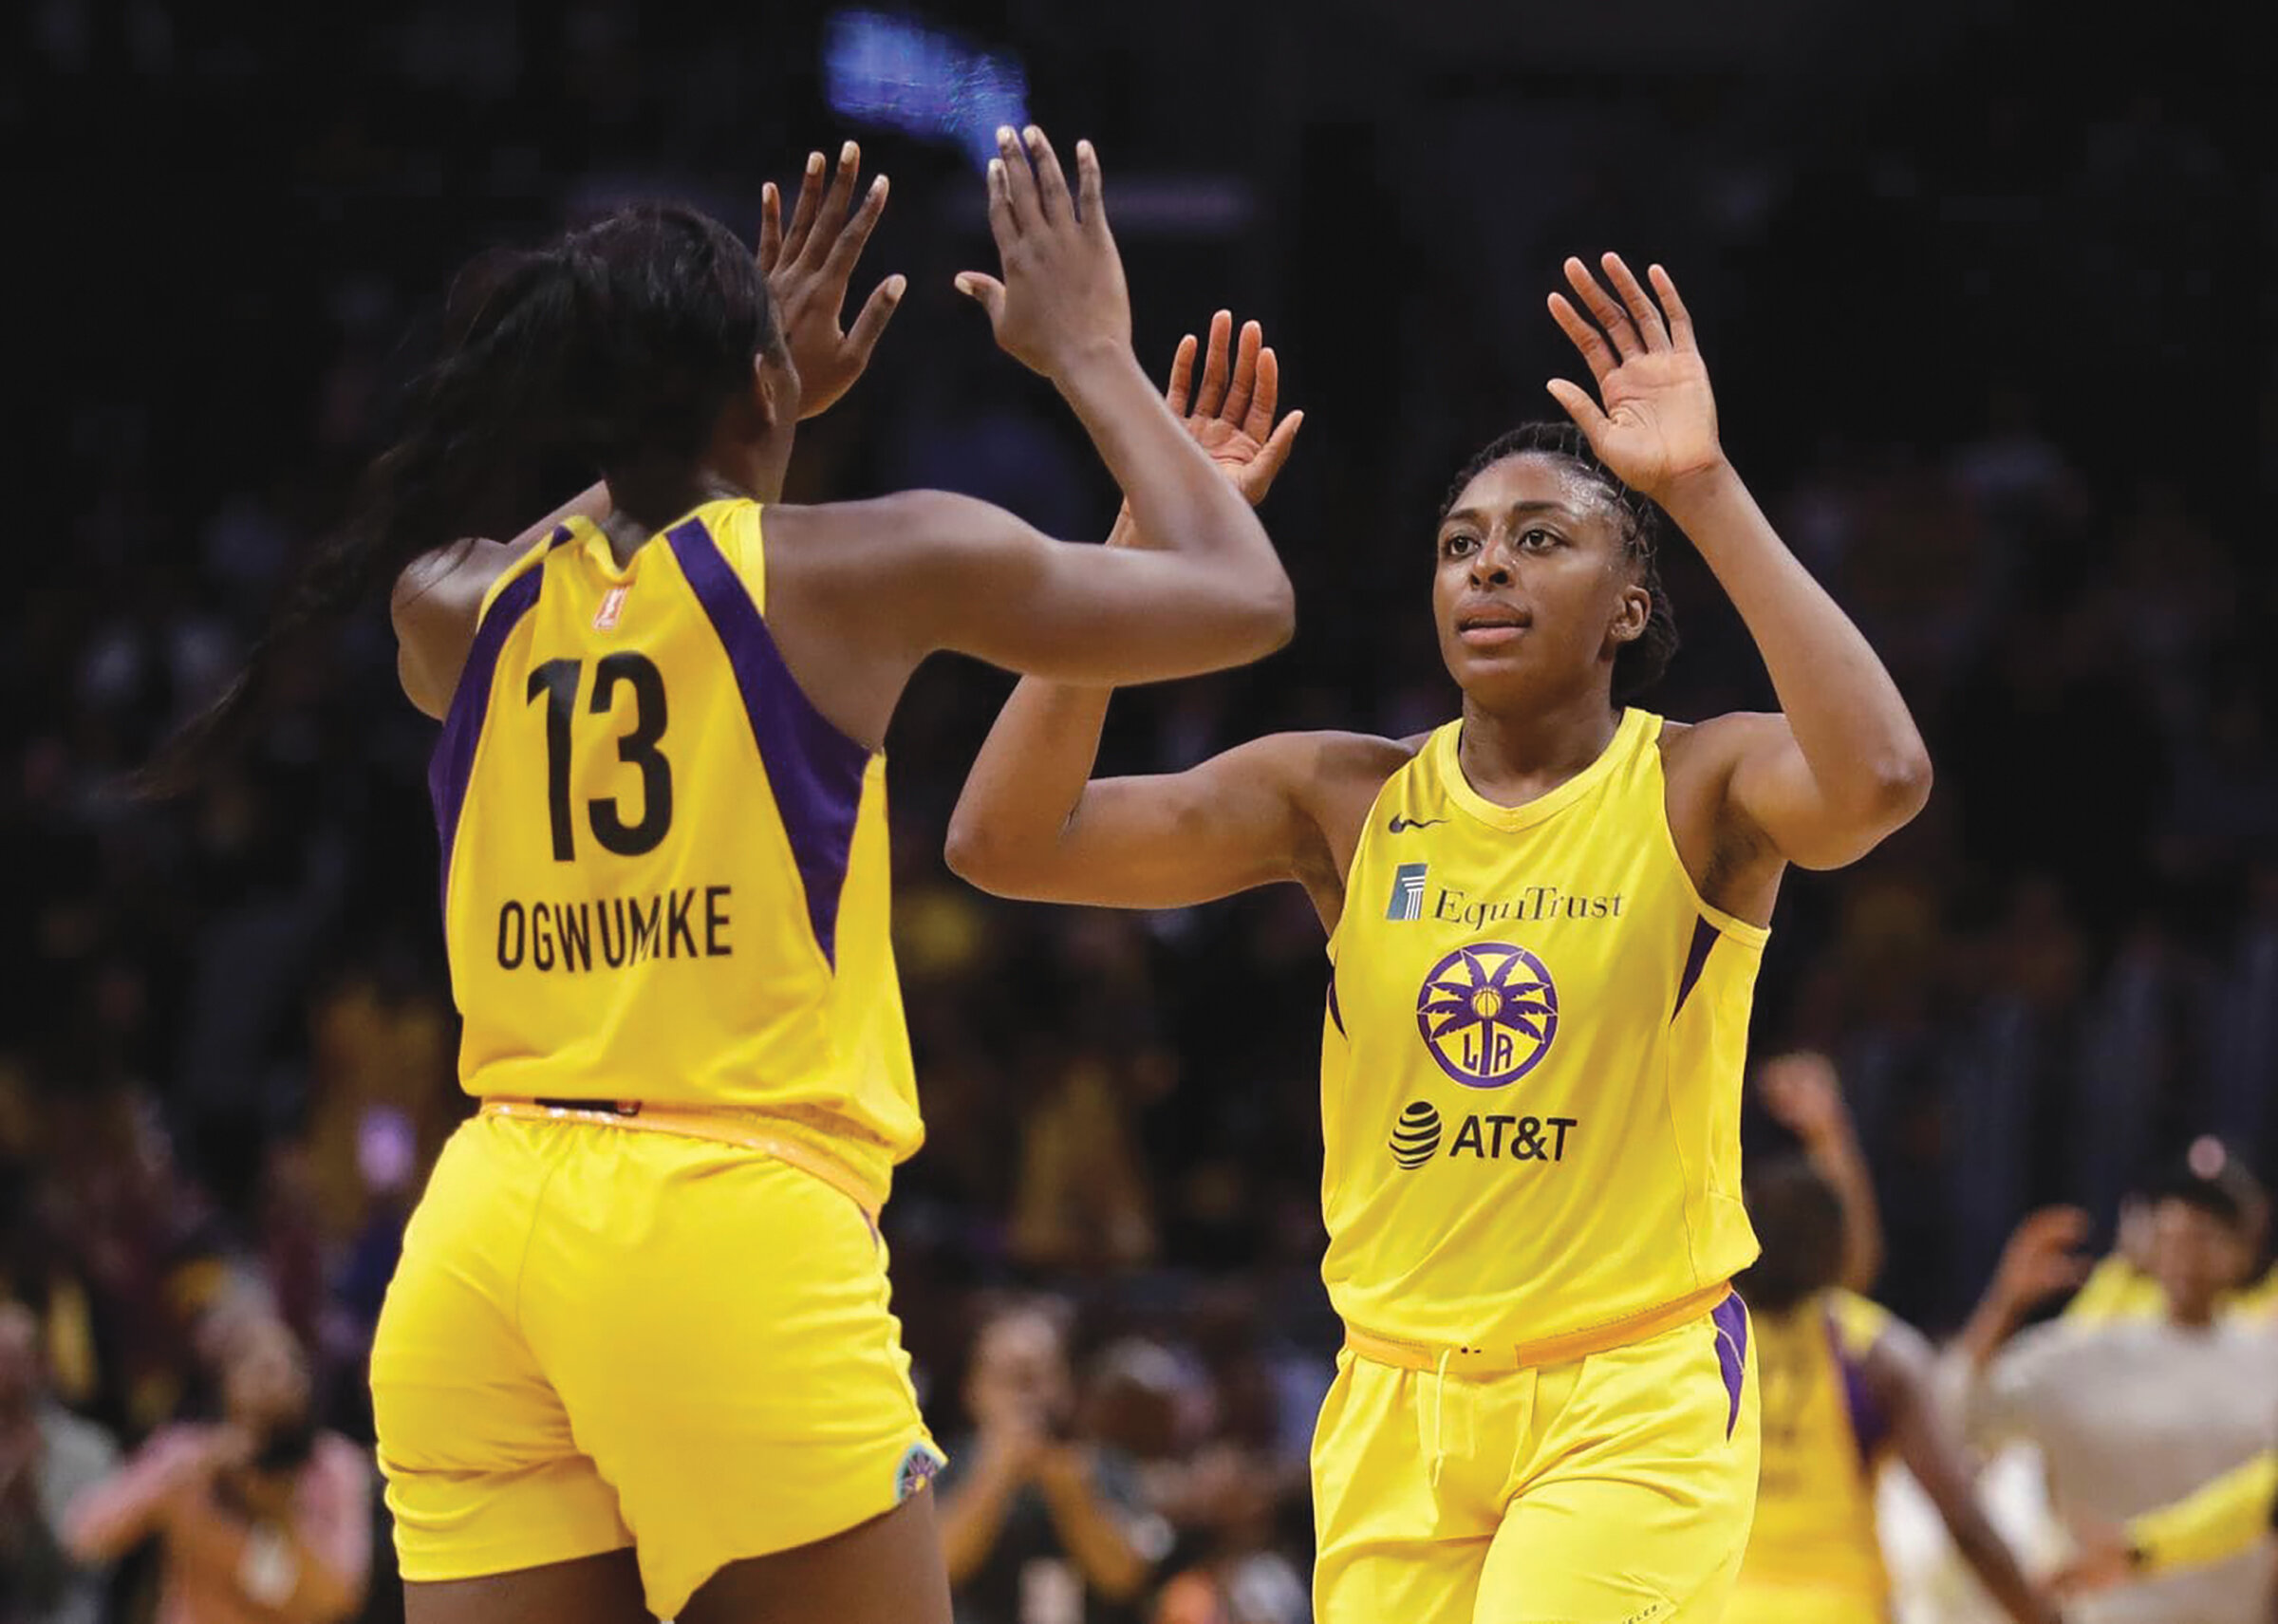 Nneka Ogwumike celebrates with her sister during the WNBA playoffs. (Courtesy Photo)